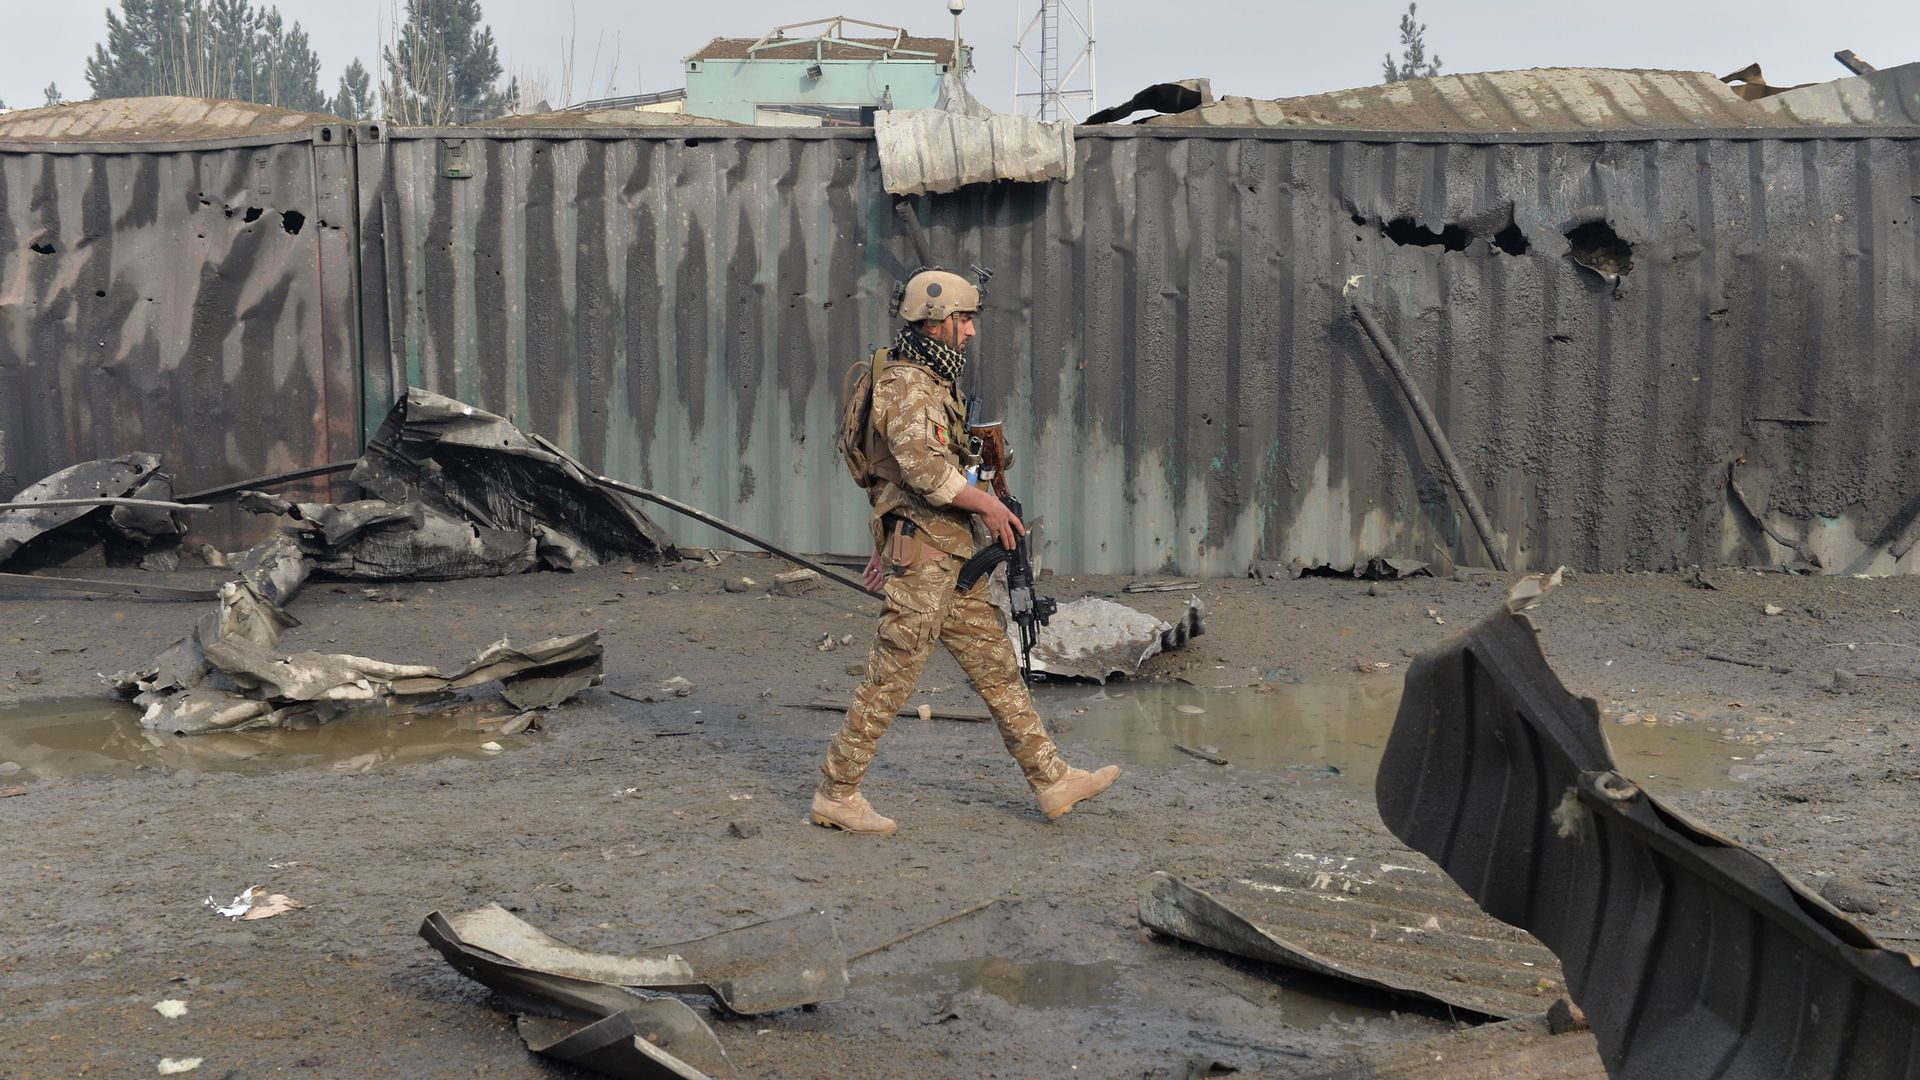 A member of the Afghan security forces walks at the site of a suicide bomb attack outside a British security firm's compound in Kabul, a day after the blast on November 29, 2018.